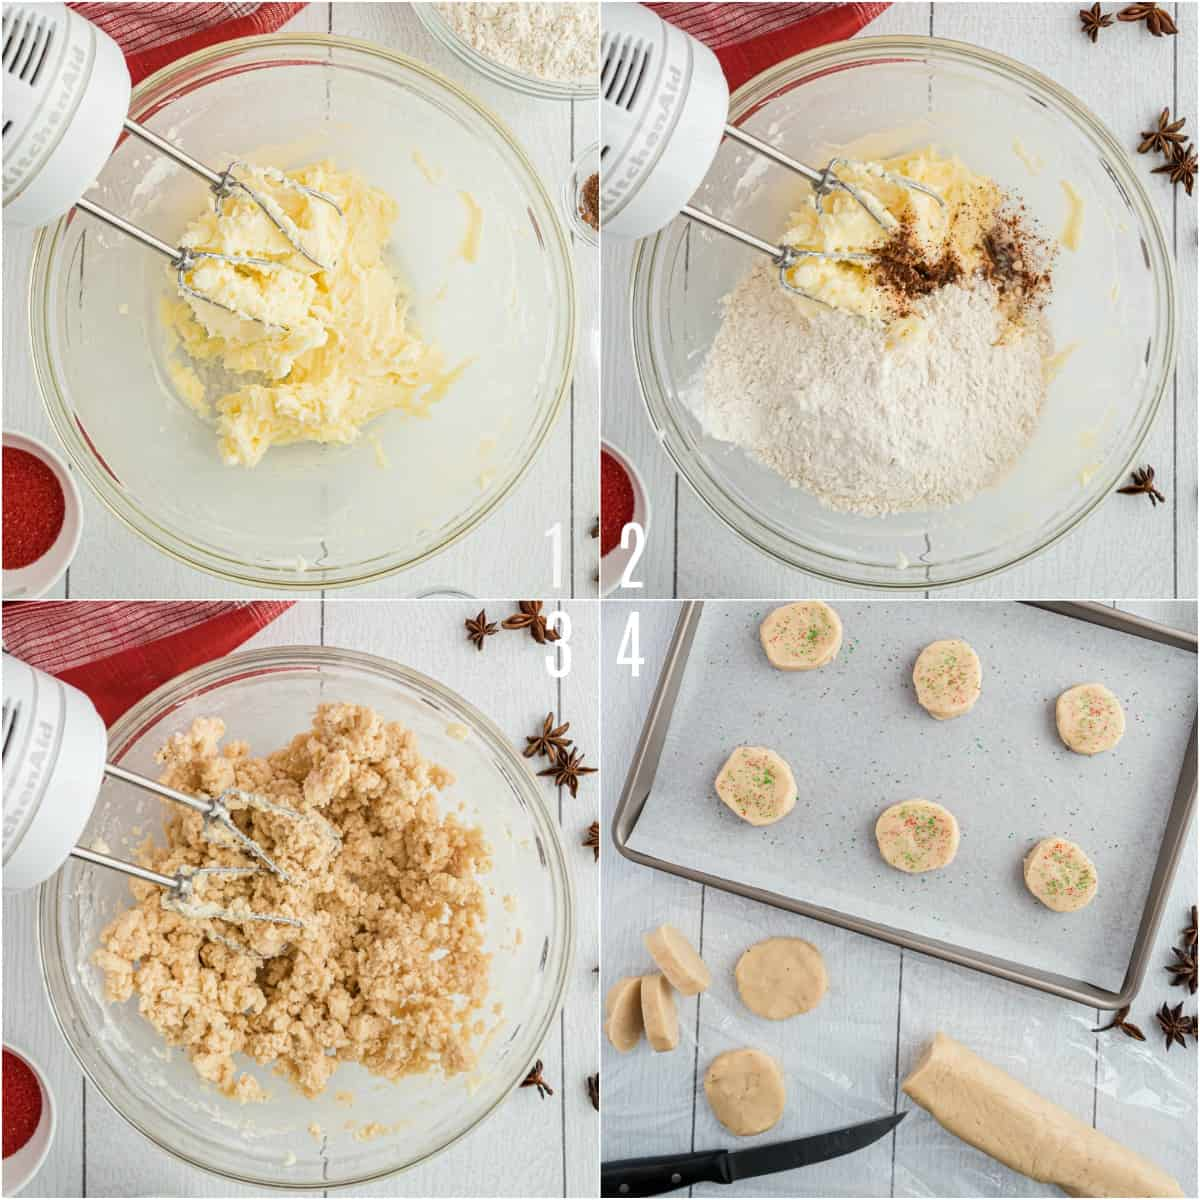 Step by step photos showing how to make jingles anise cookies.